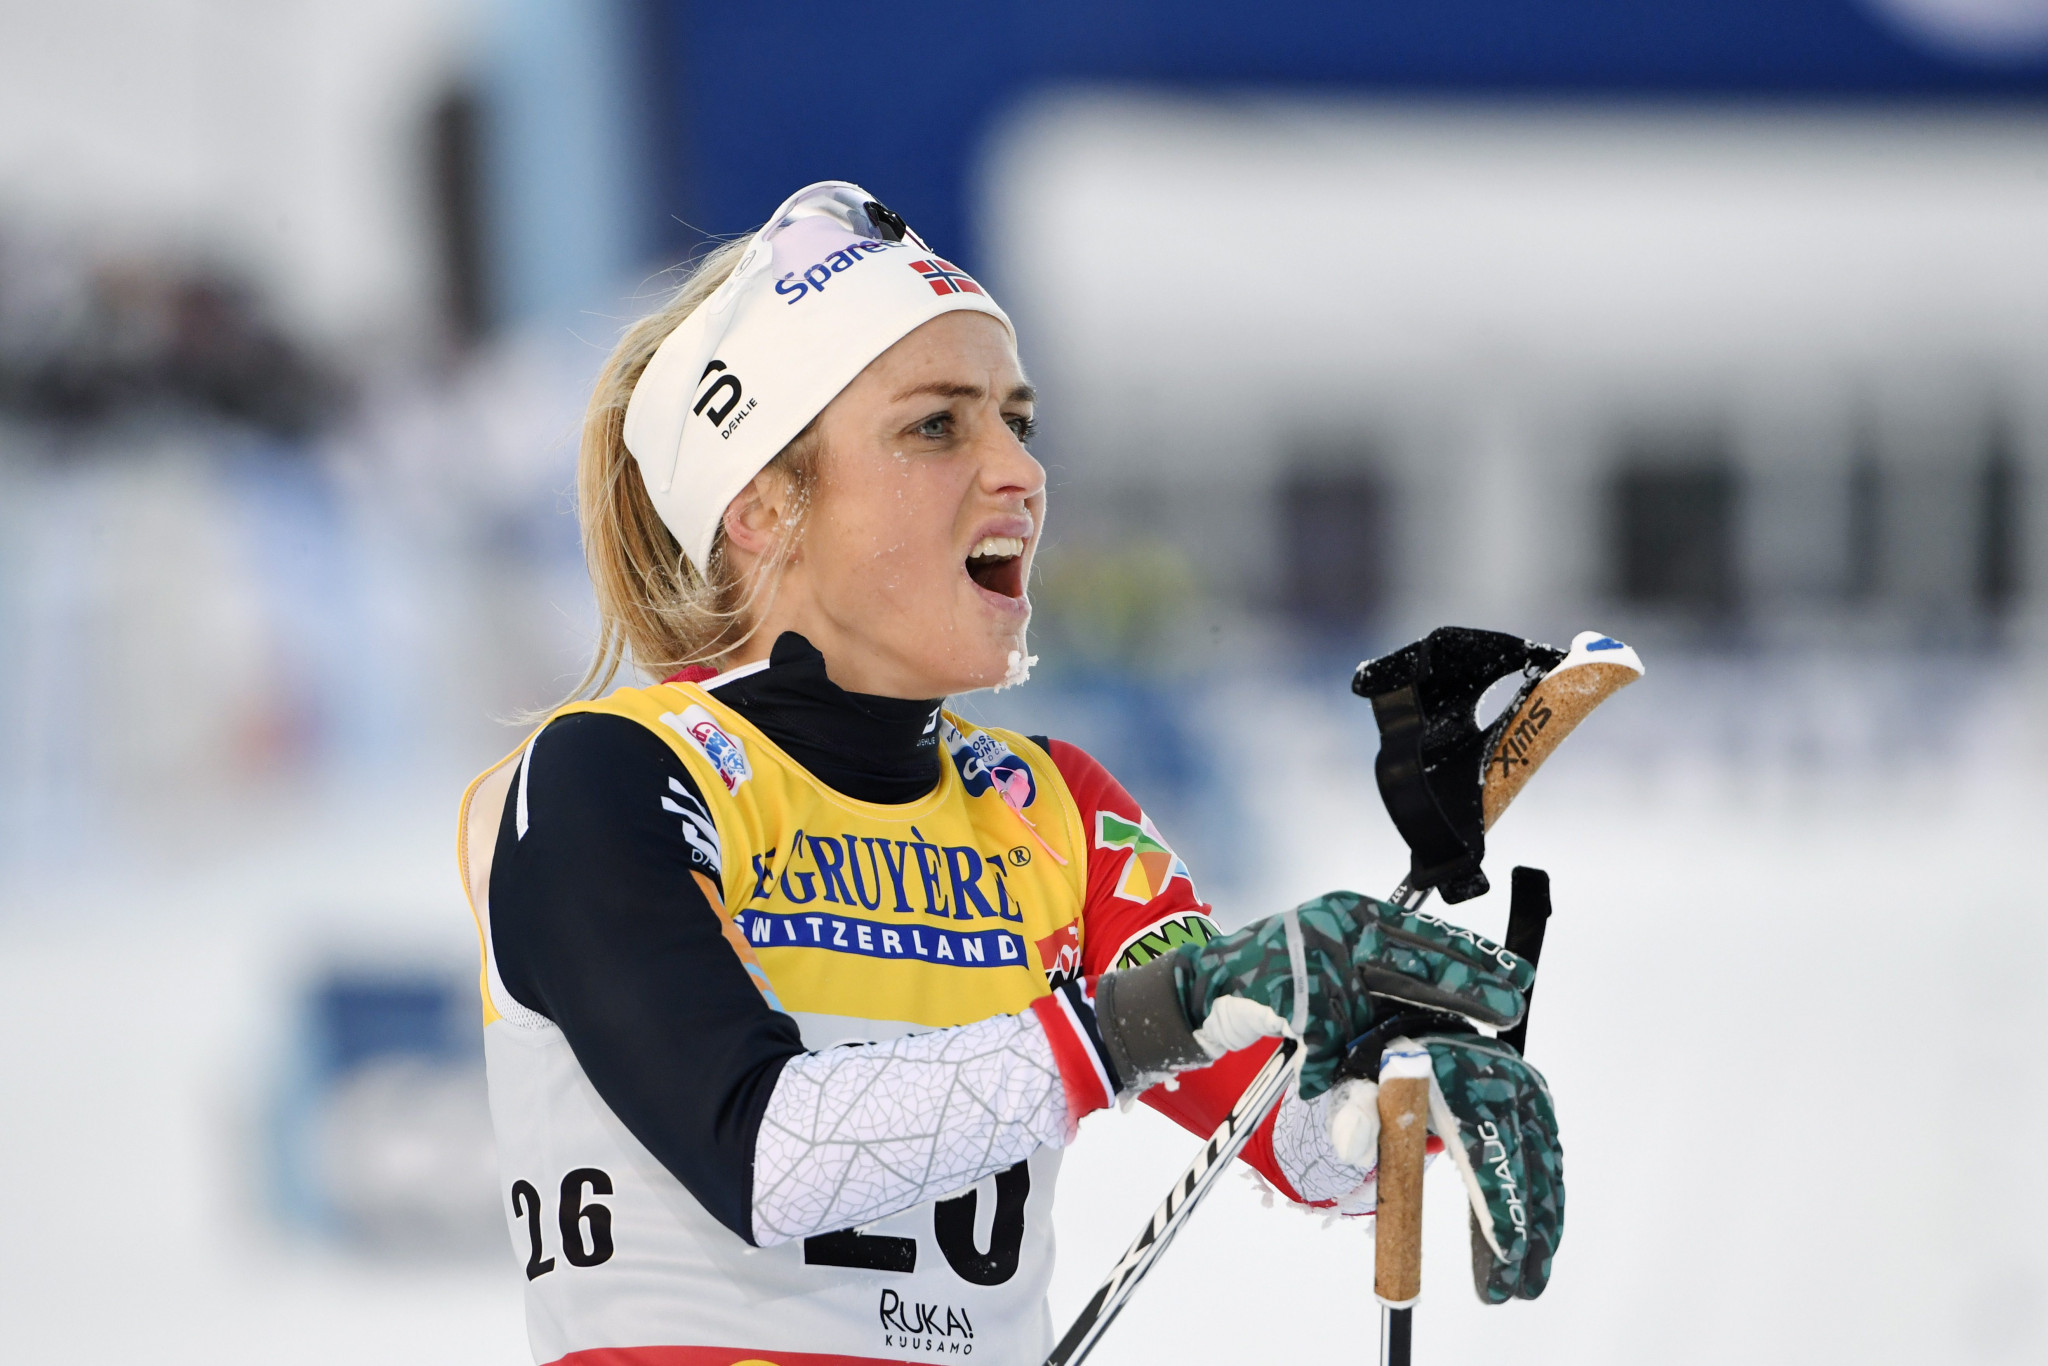 Norway's multiple world cross-country skiing champion Johaug wins first race  back after doping ban